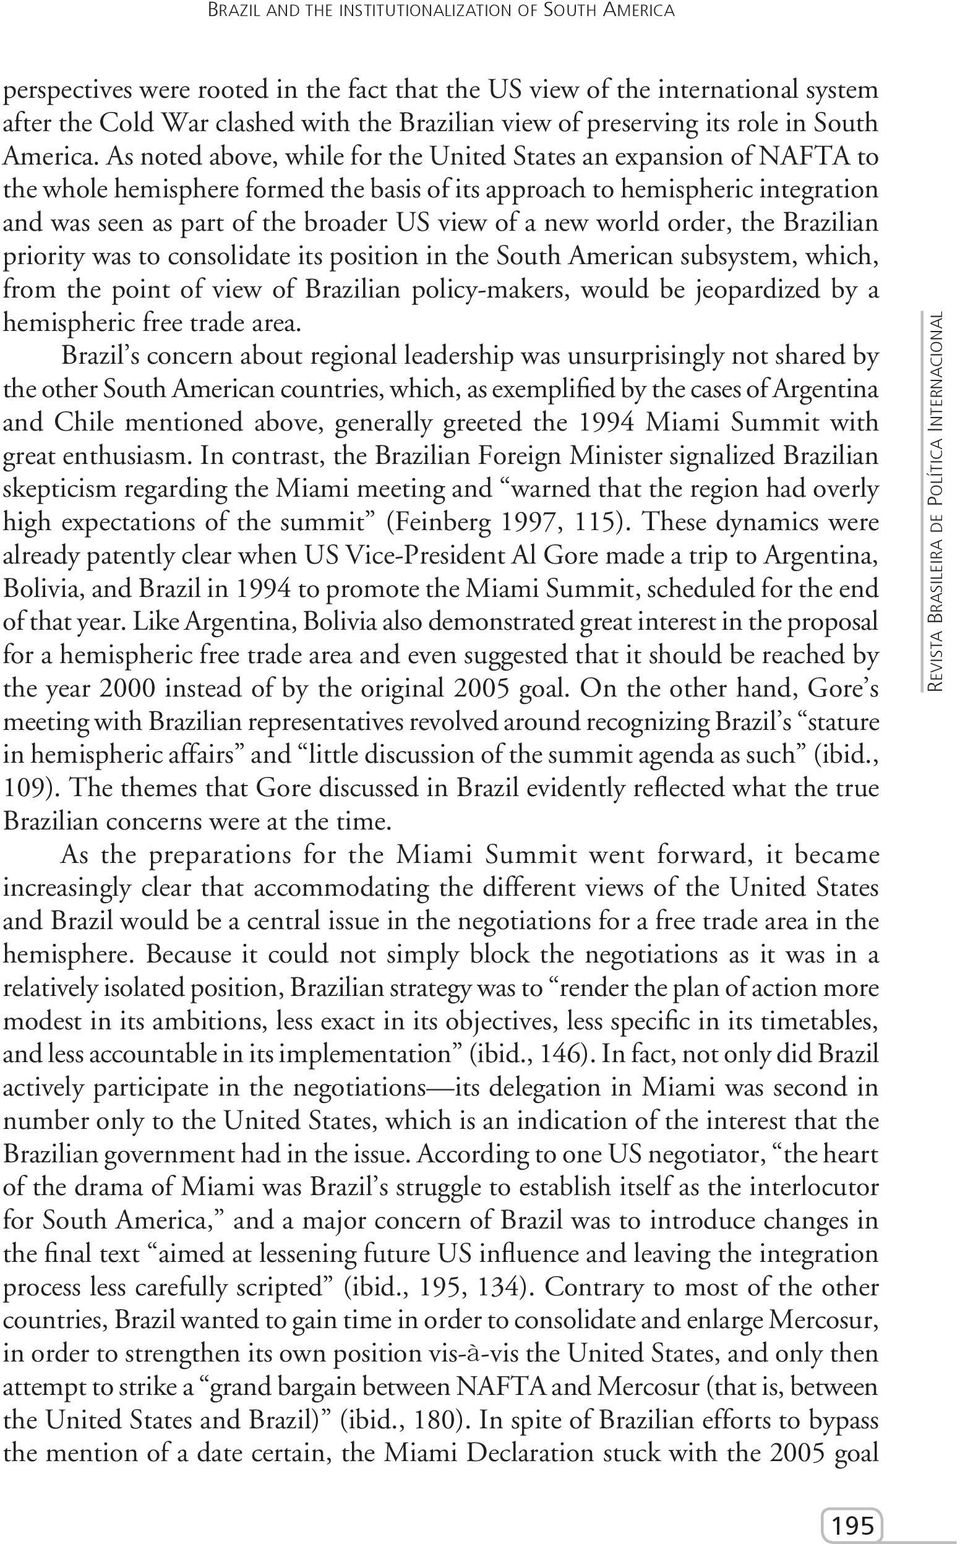 As noted above, while for the United States an expansion of NAFTA to the whole hemisphere formed the basis of its approach to hemispheric integration and was seen as part of the broader US view of a